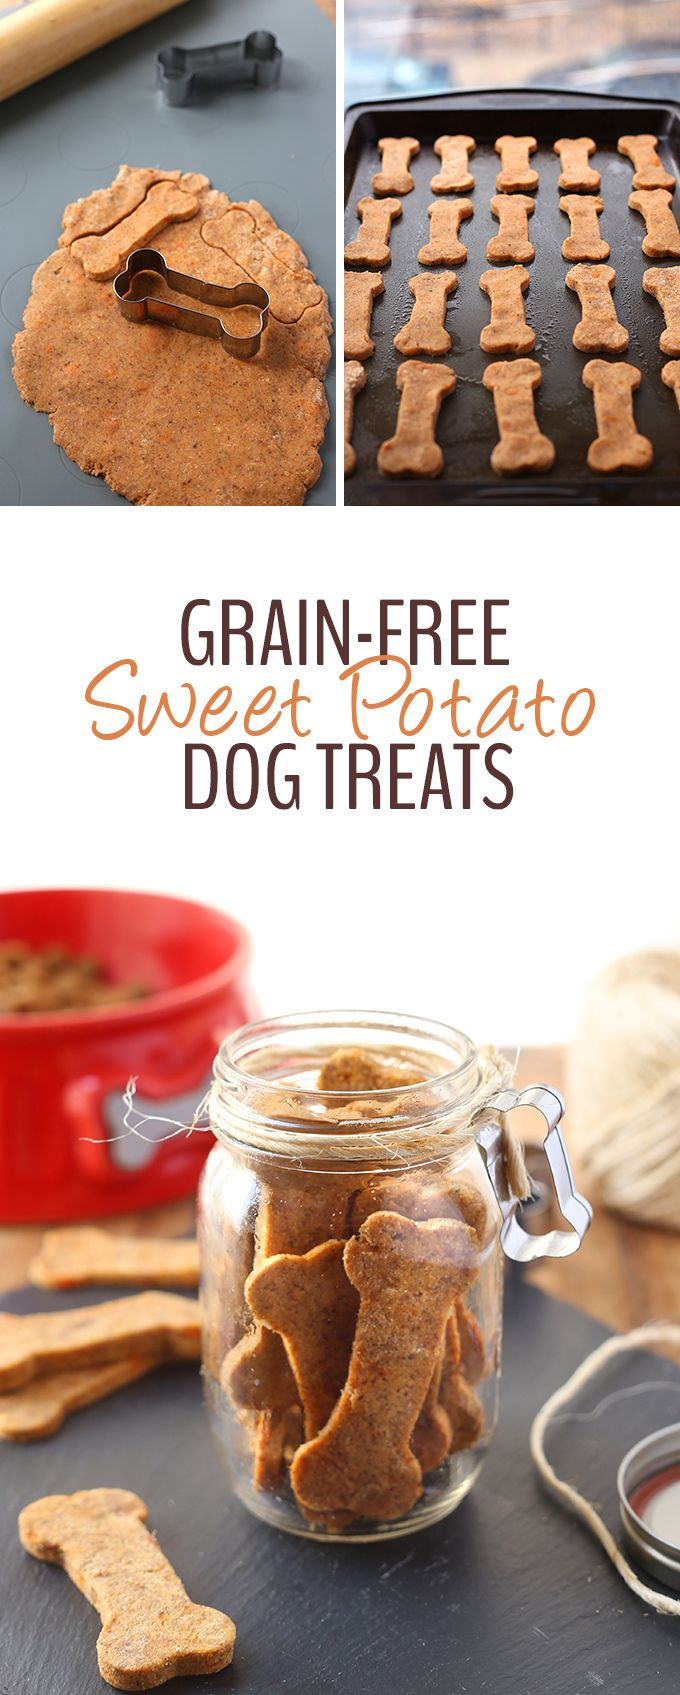 Grain-Free Sweet Potato Dog Treats